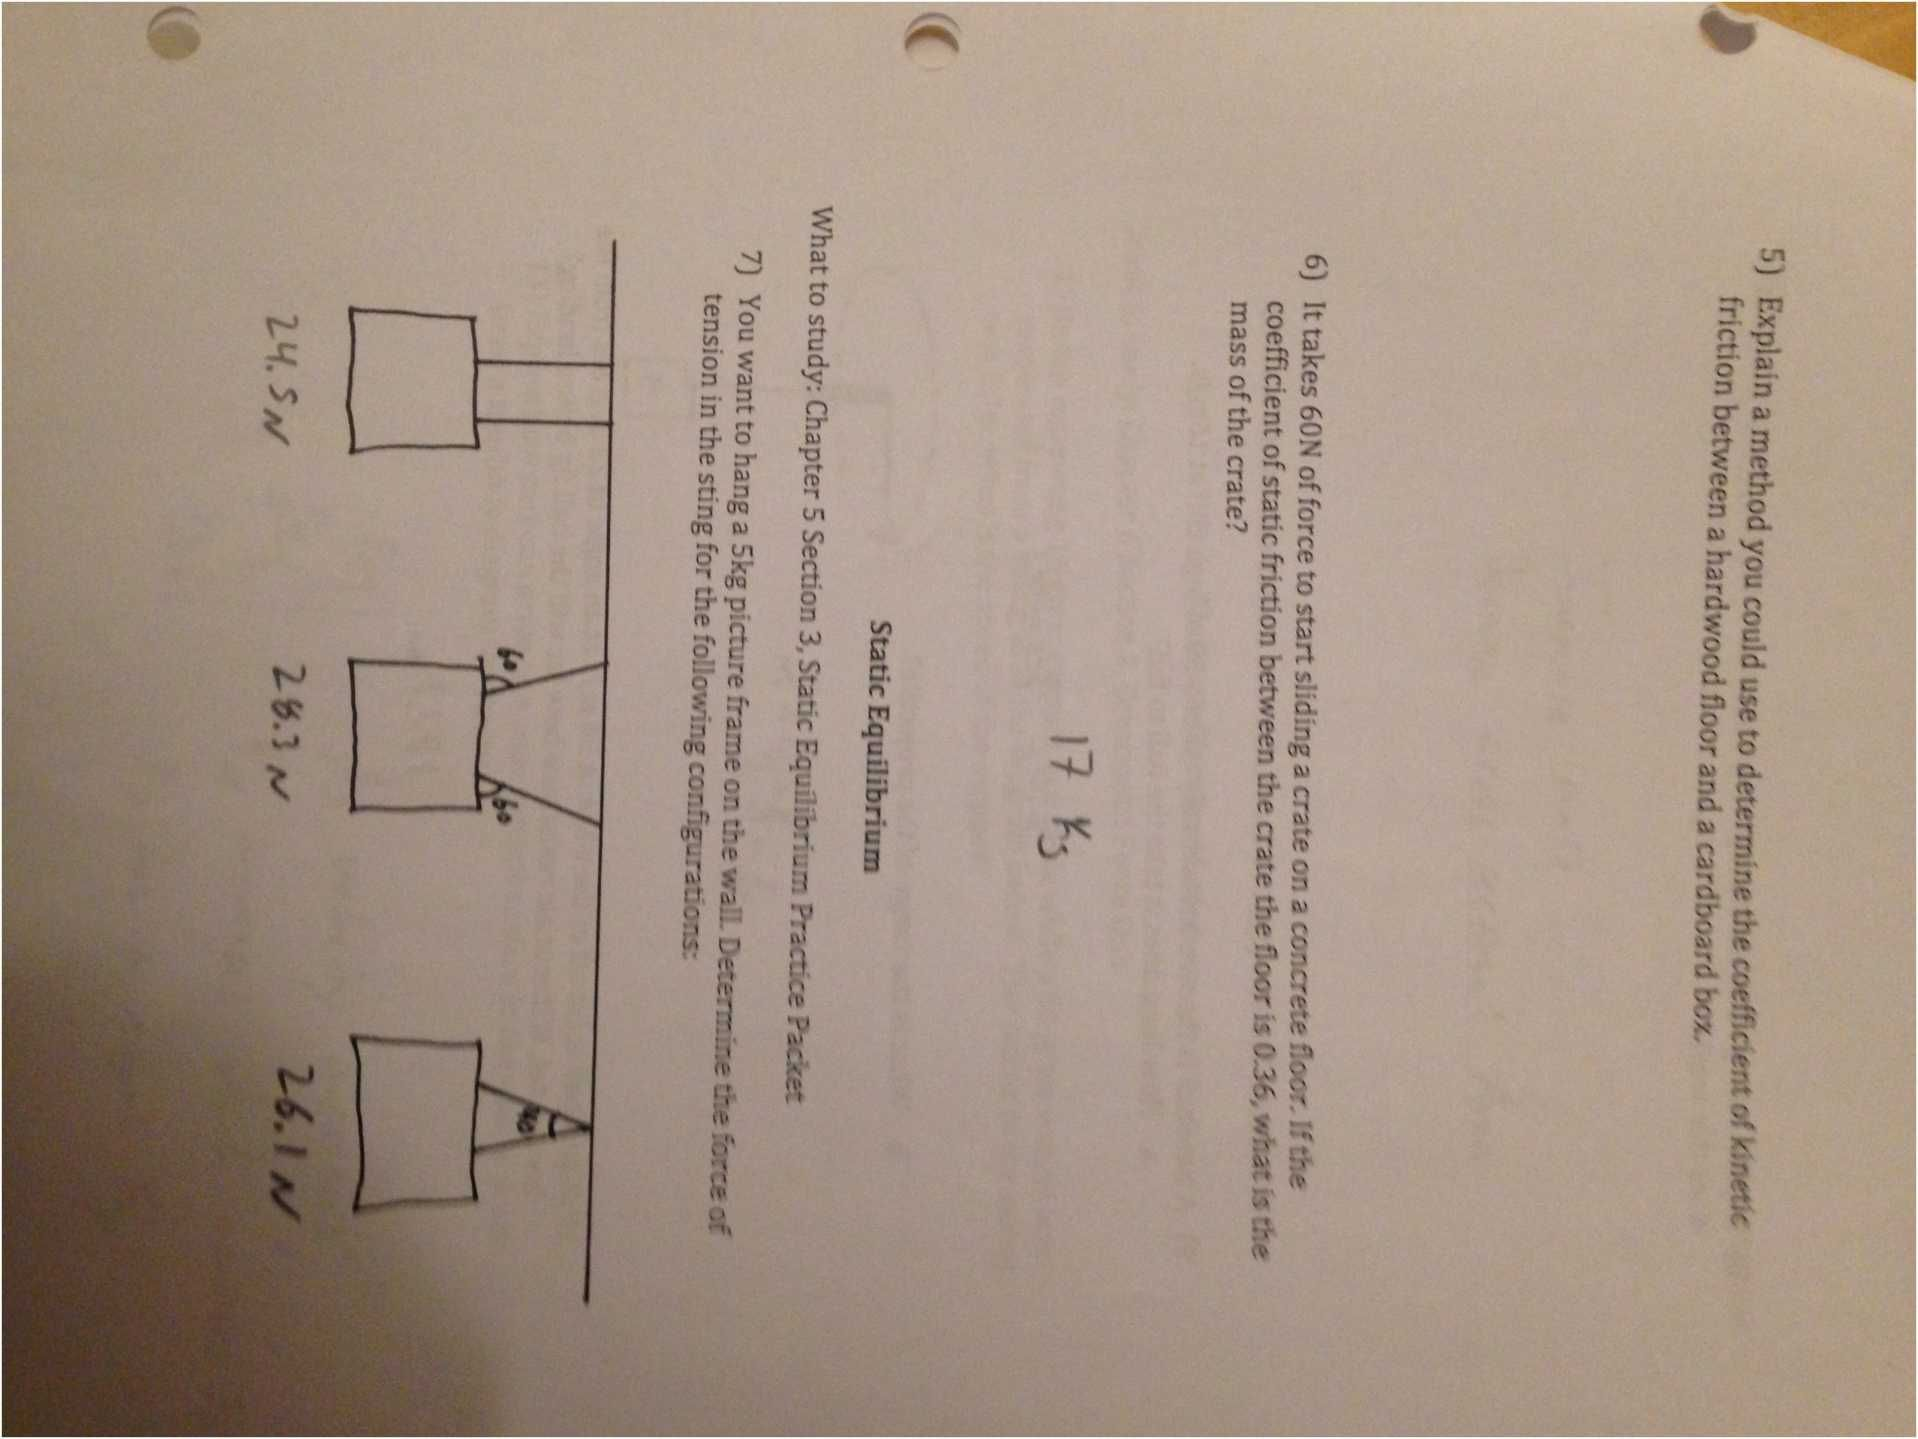 Controlling A Collision Worksheet Answers